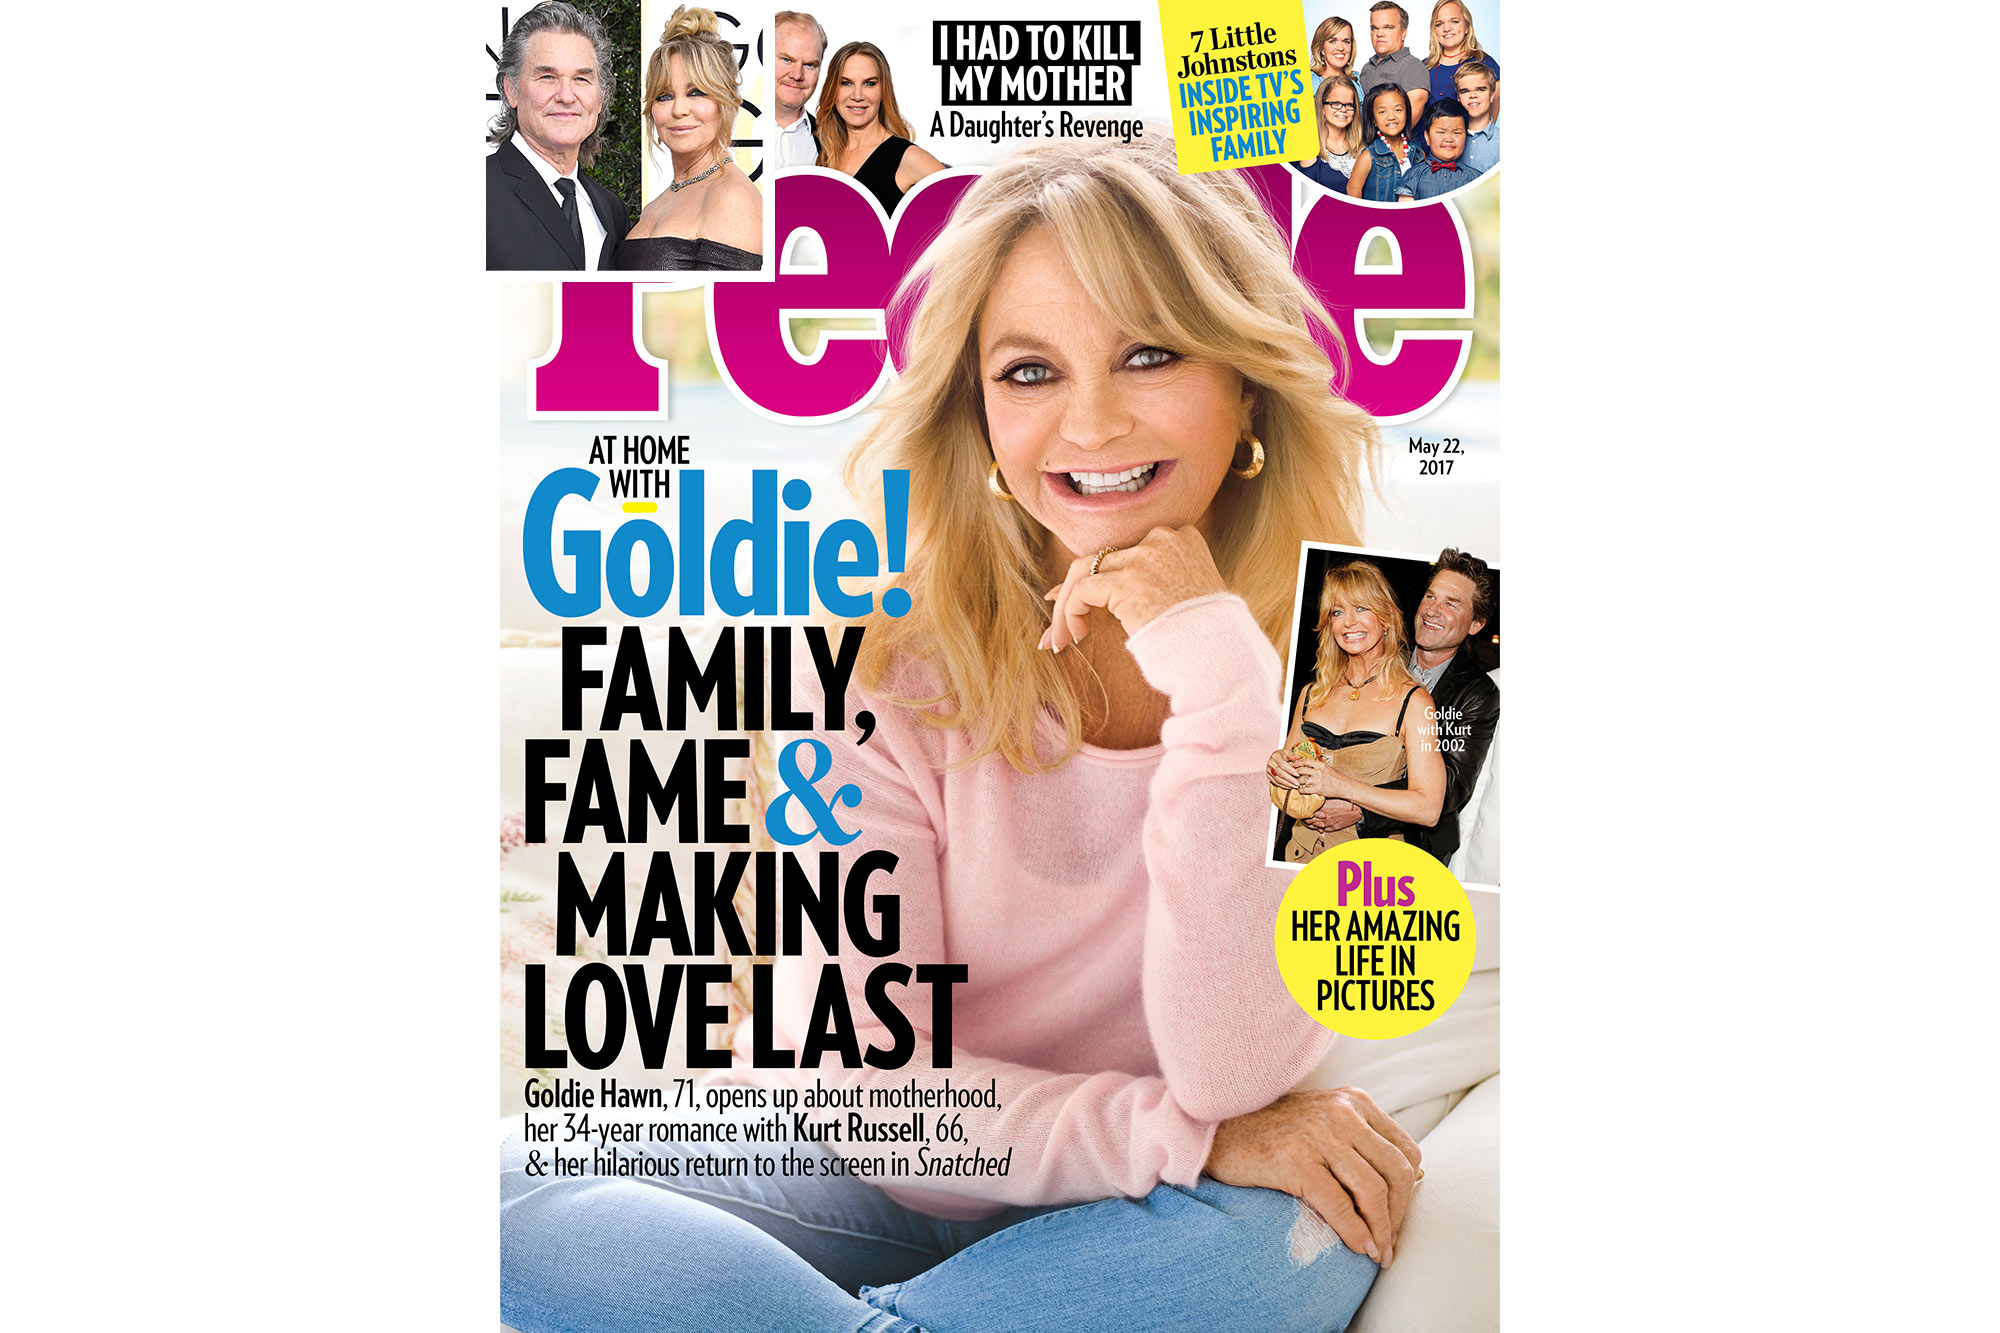 people-cover-inset-1.jpg